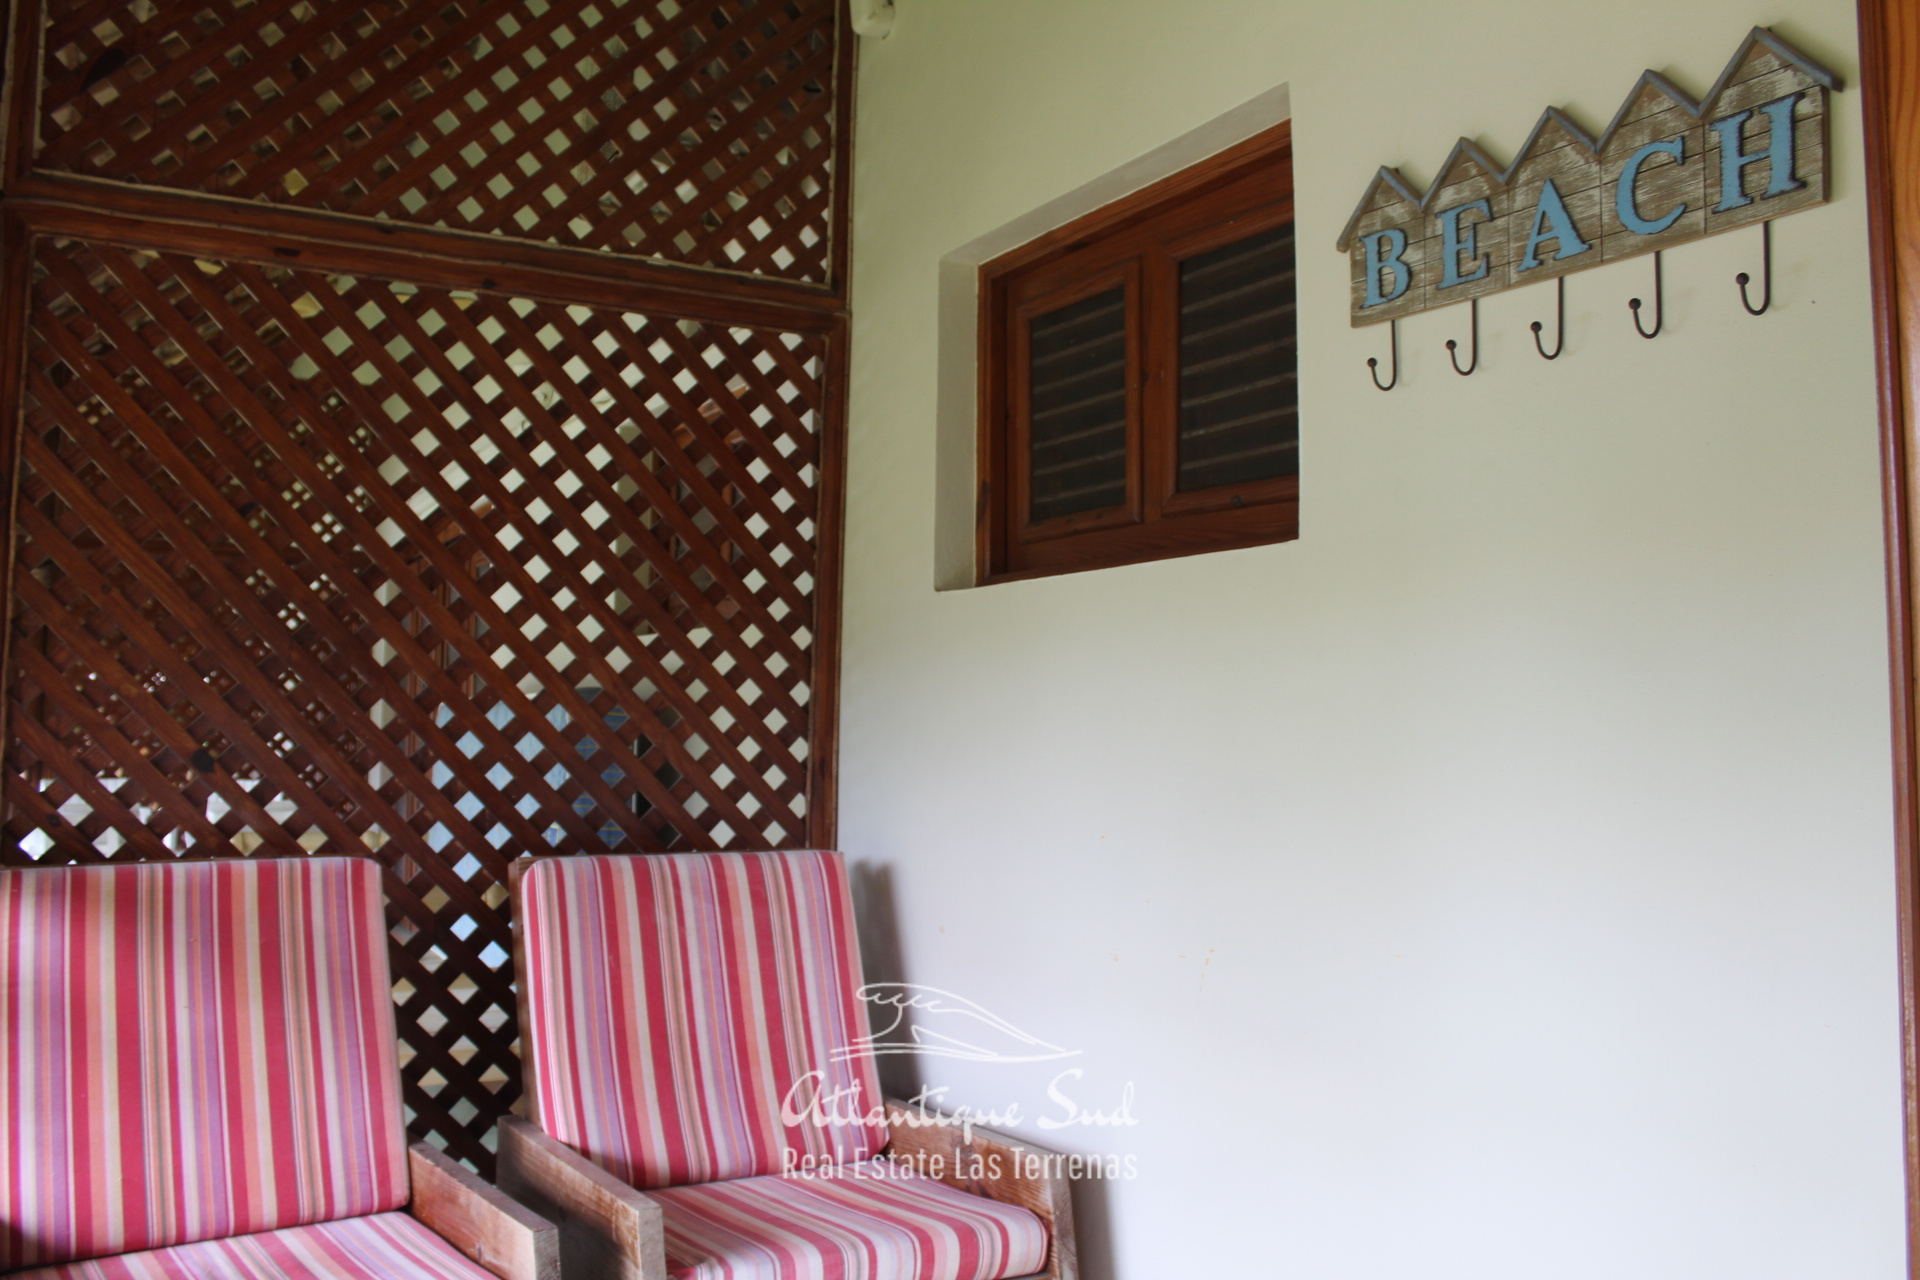 For-sale-Apartment-in-beachfront-community-with-mezzanine-Las-Terrenas_4809 (1).JPG